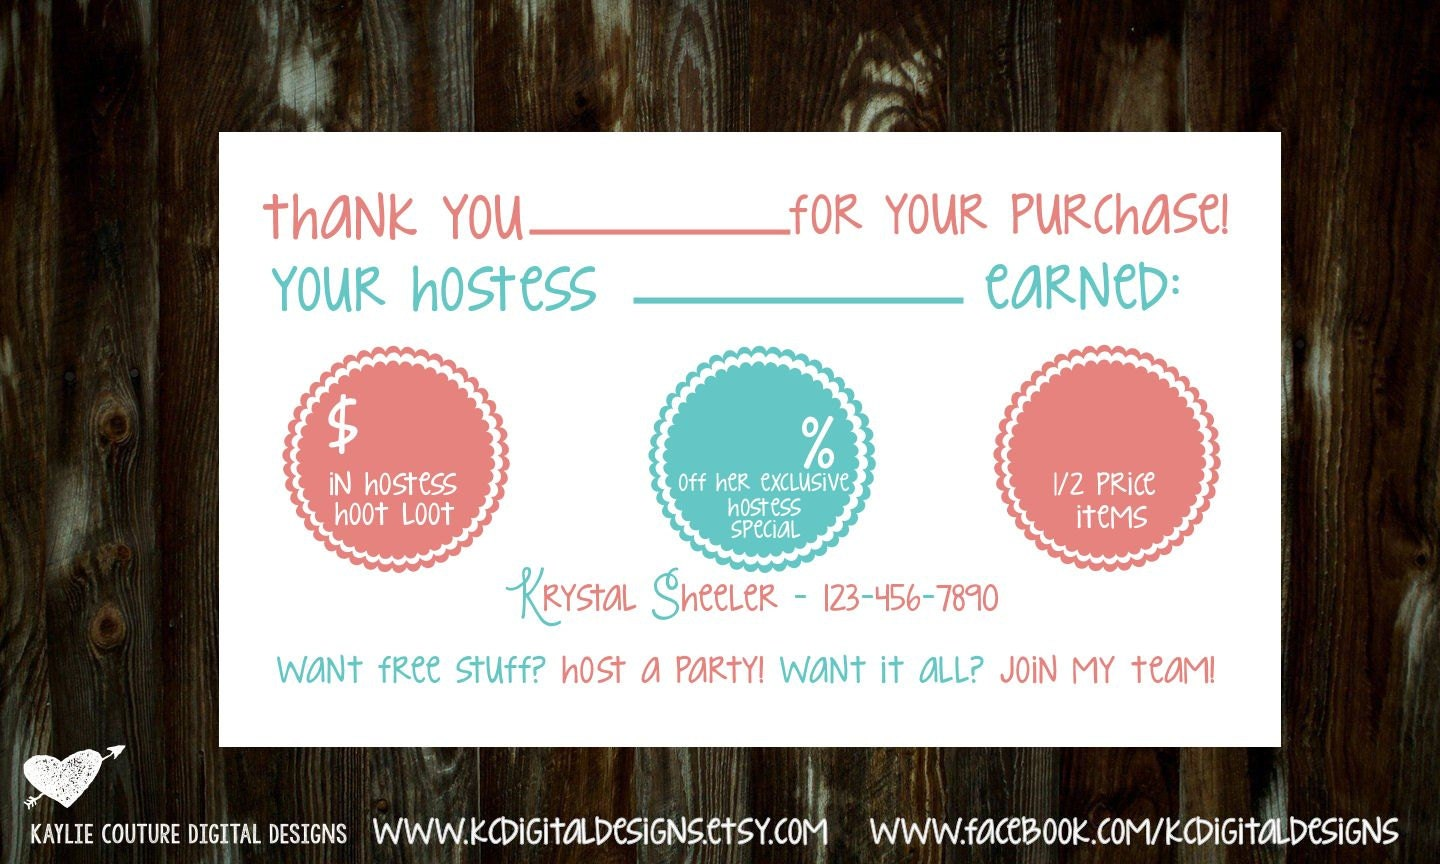 Origami Owl Business Cards Images - Craft Decoration Ideas